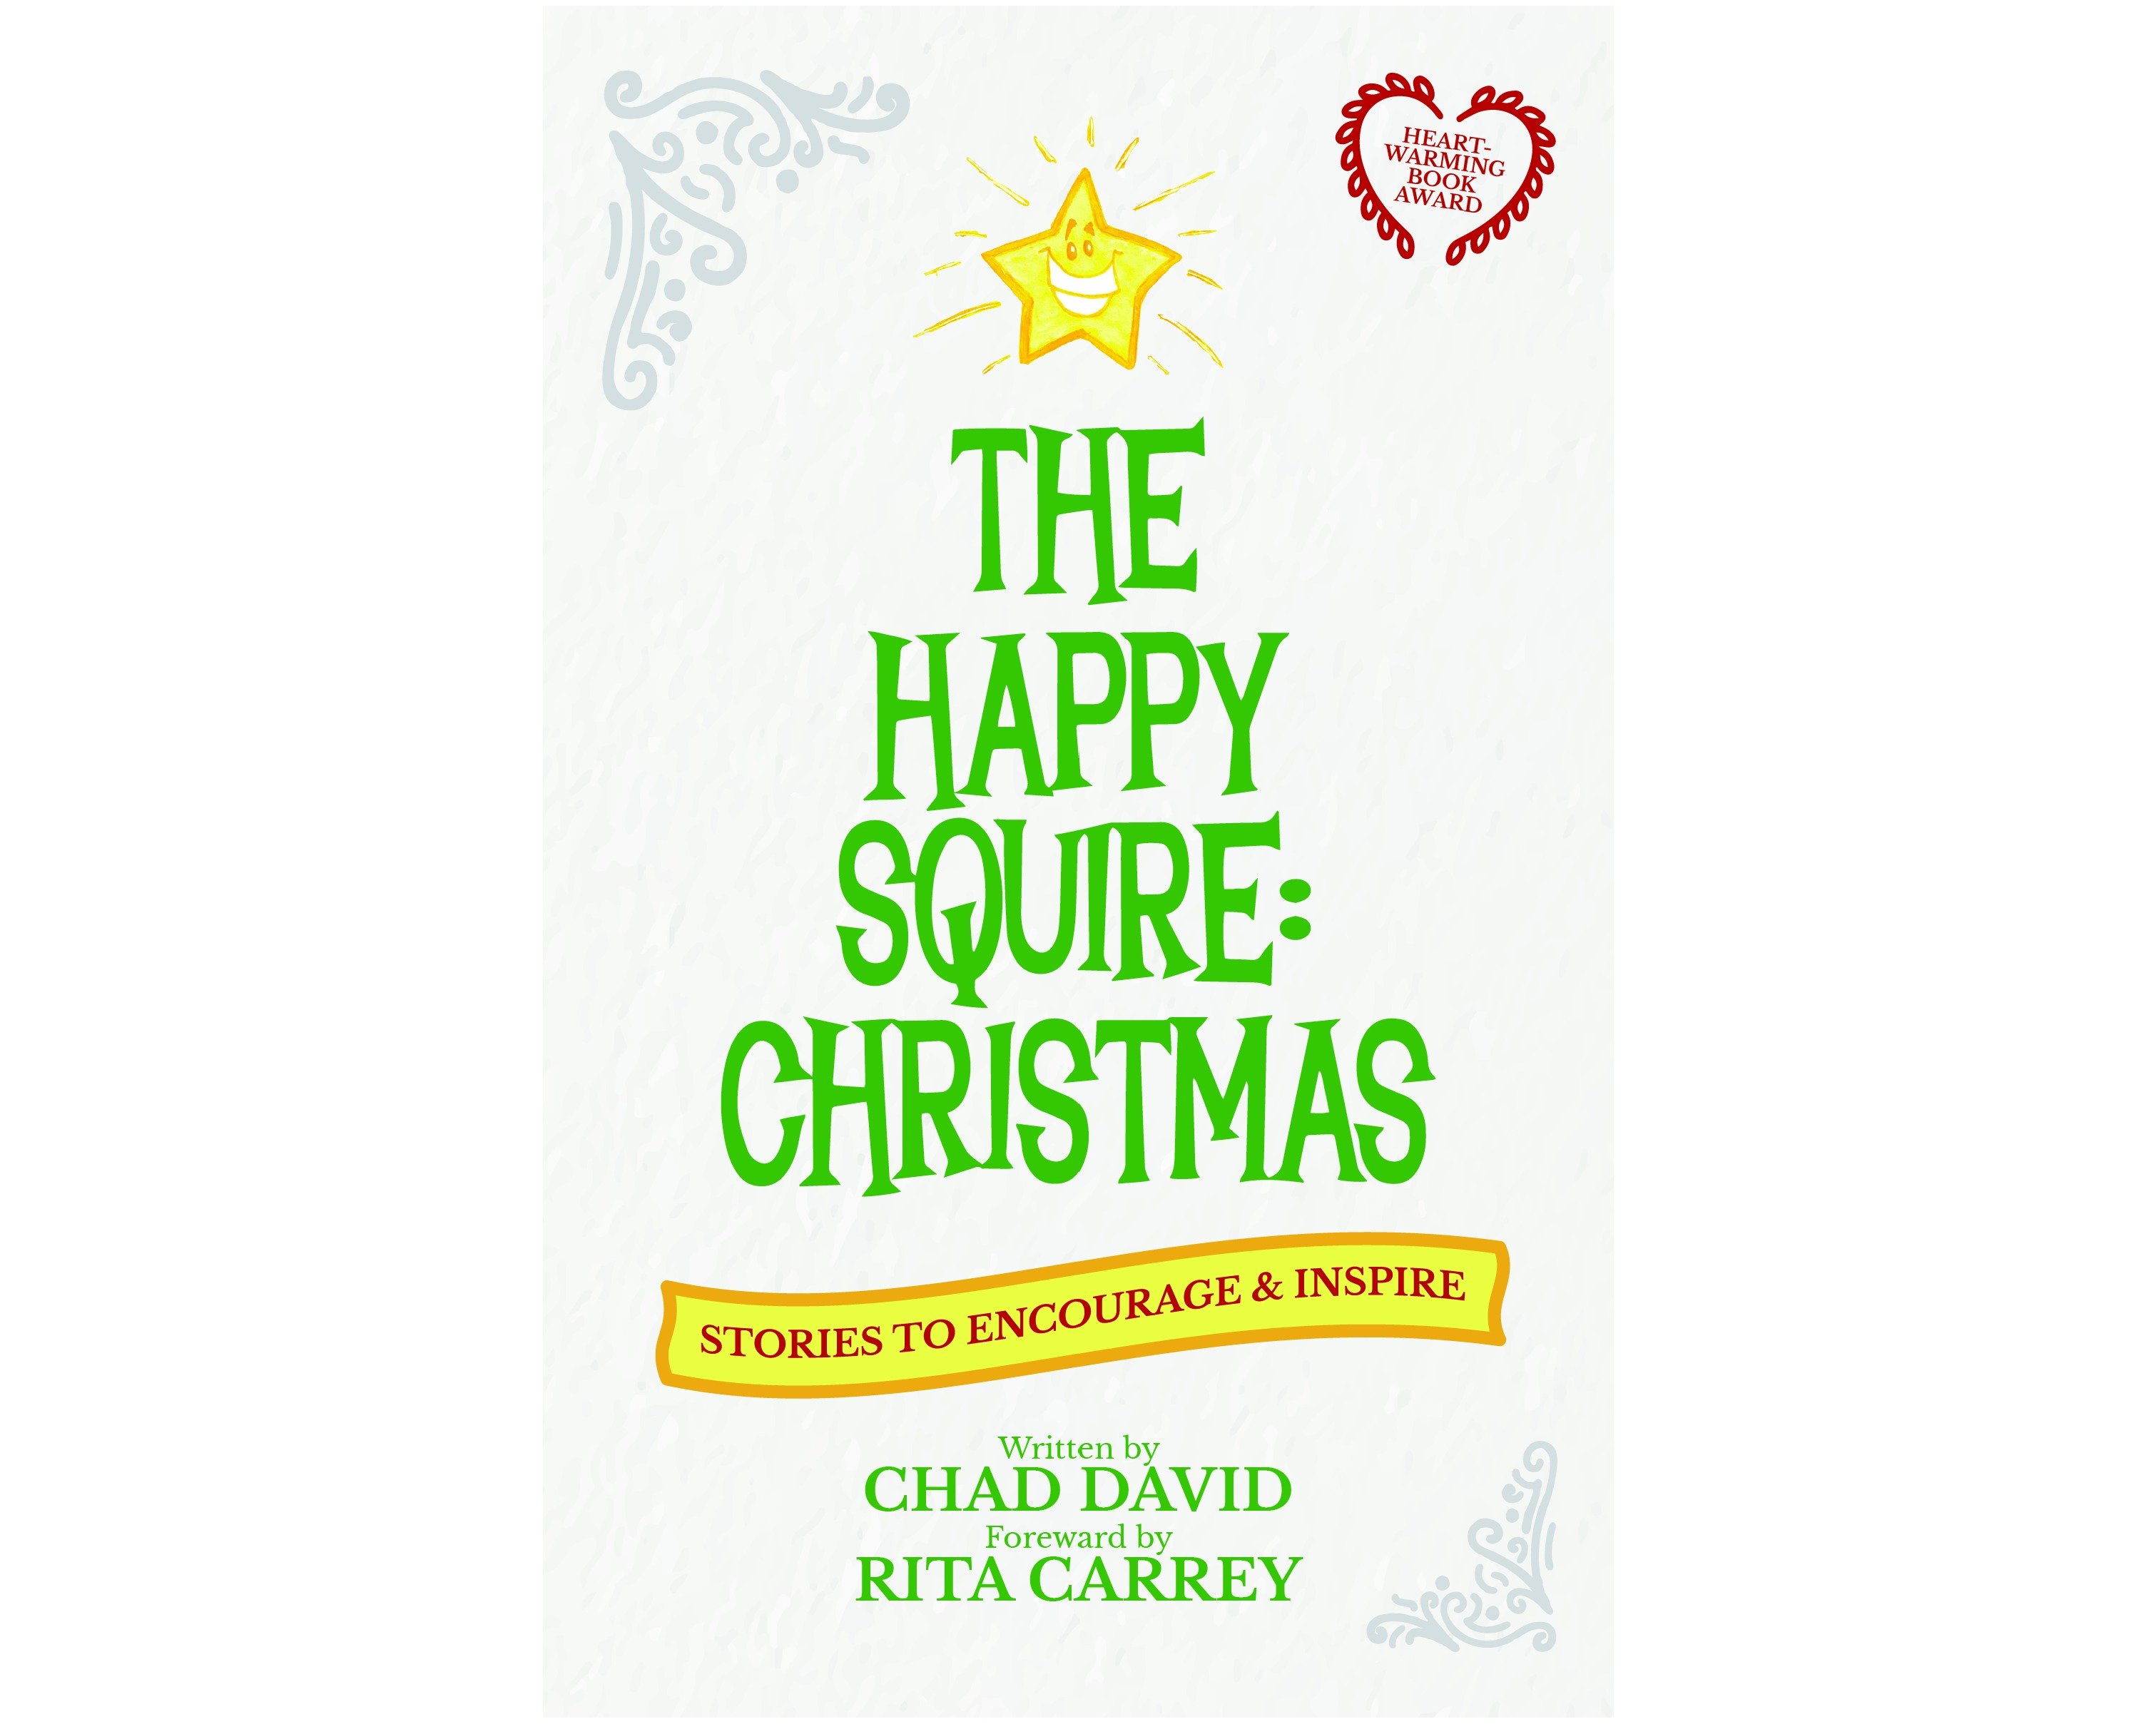 The Happy Squire Christmas Stories to Insprie